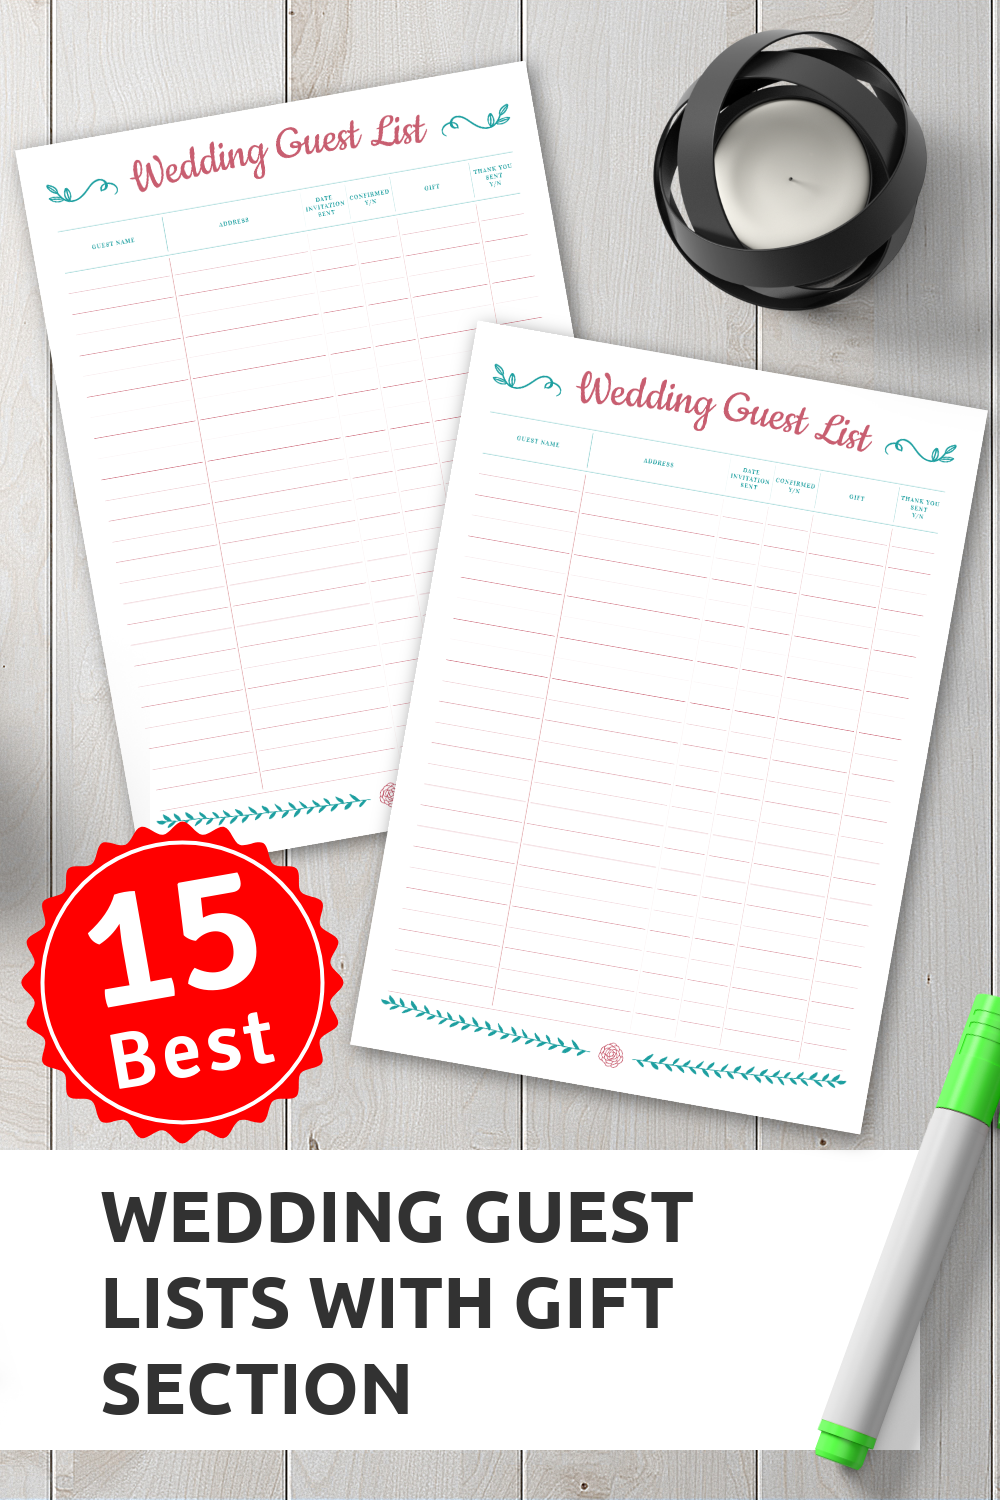 Wedding Guest List with Gift Section Wedding guest list